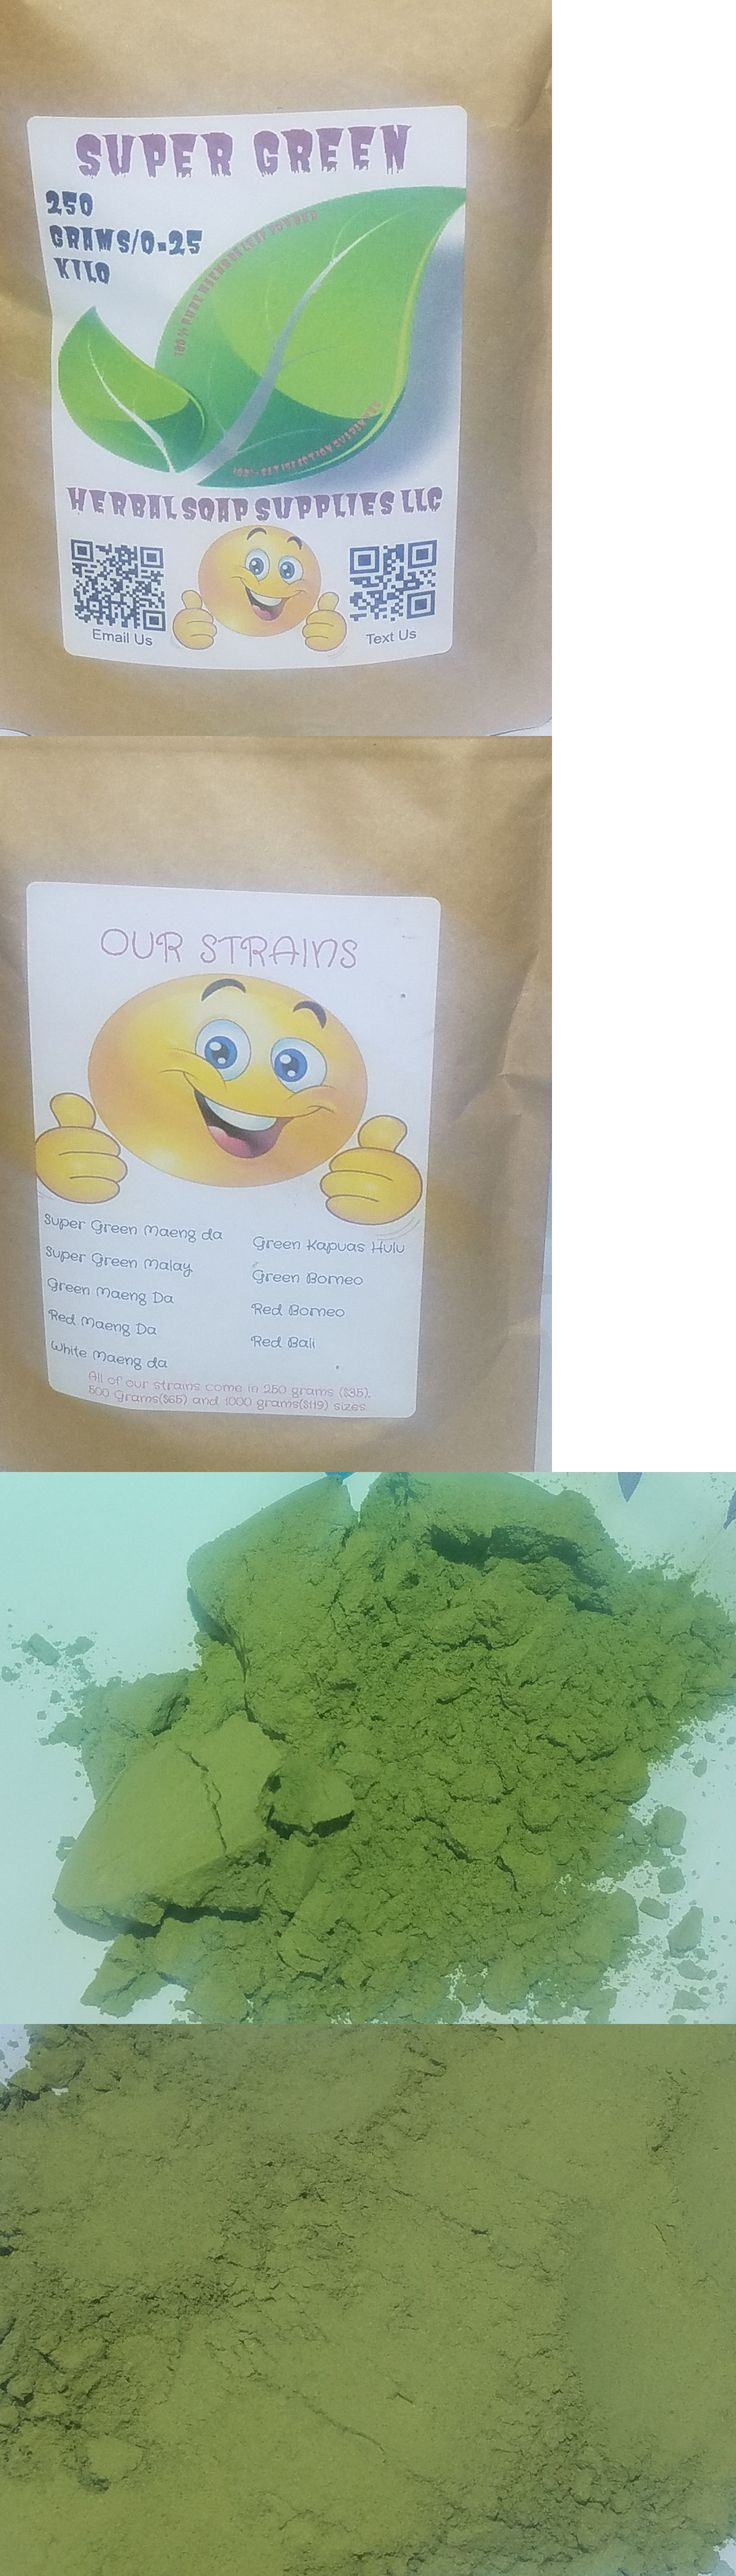 Herbal Remedies and Resins: 250 Grams Maeng Da Powder. Free Shipping $35!!!!!!!! -> BUY IT NOW ONLY: $35 on eBay!